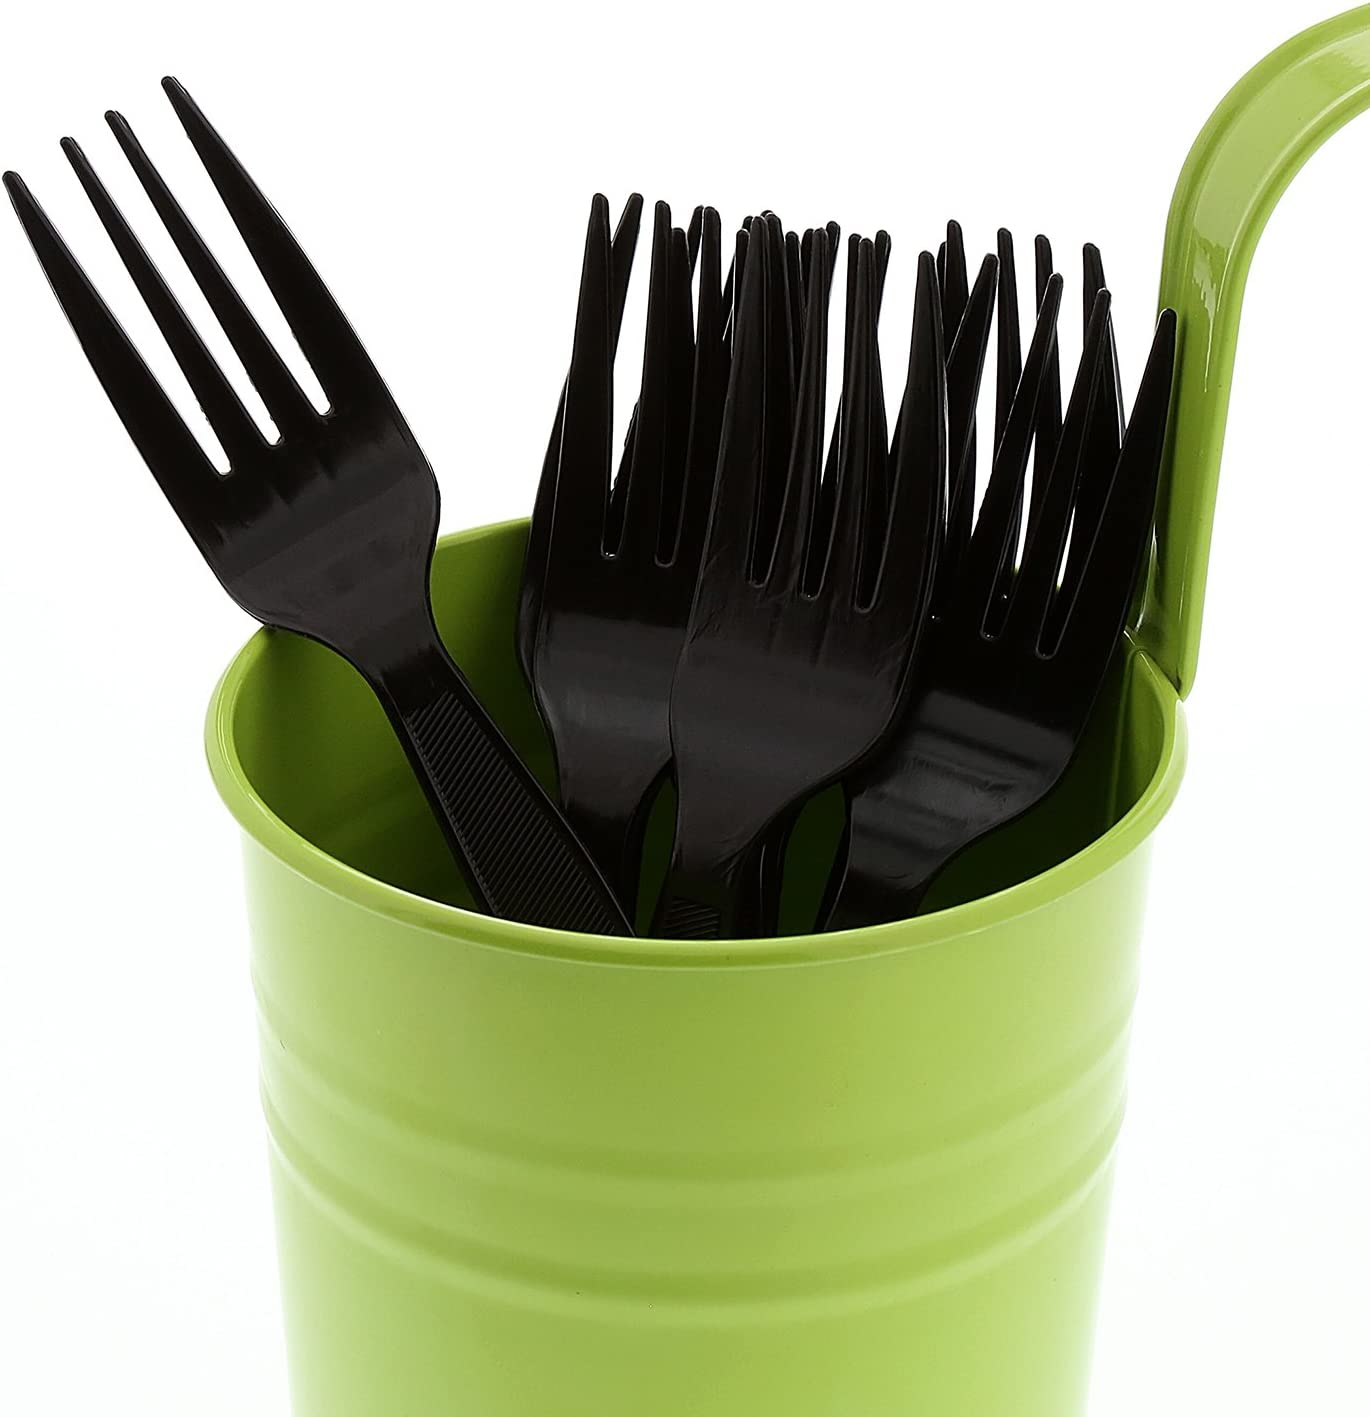 Case of 1000 AmerCare Heavy Weight Individually Wrapped Black Polypropylene Forks